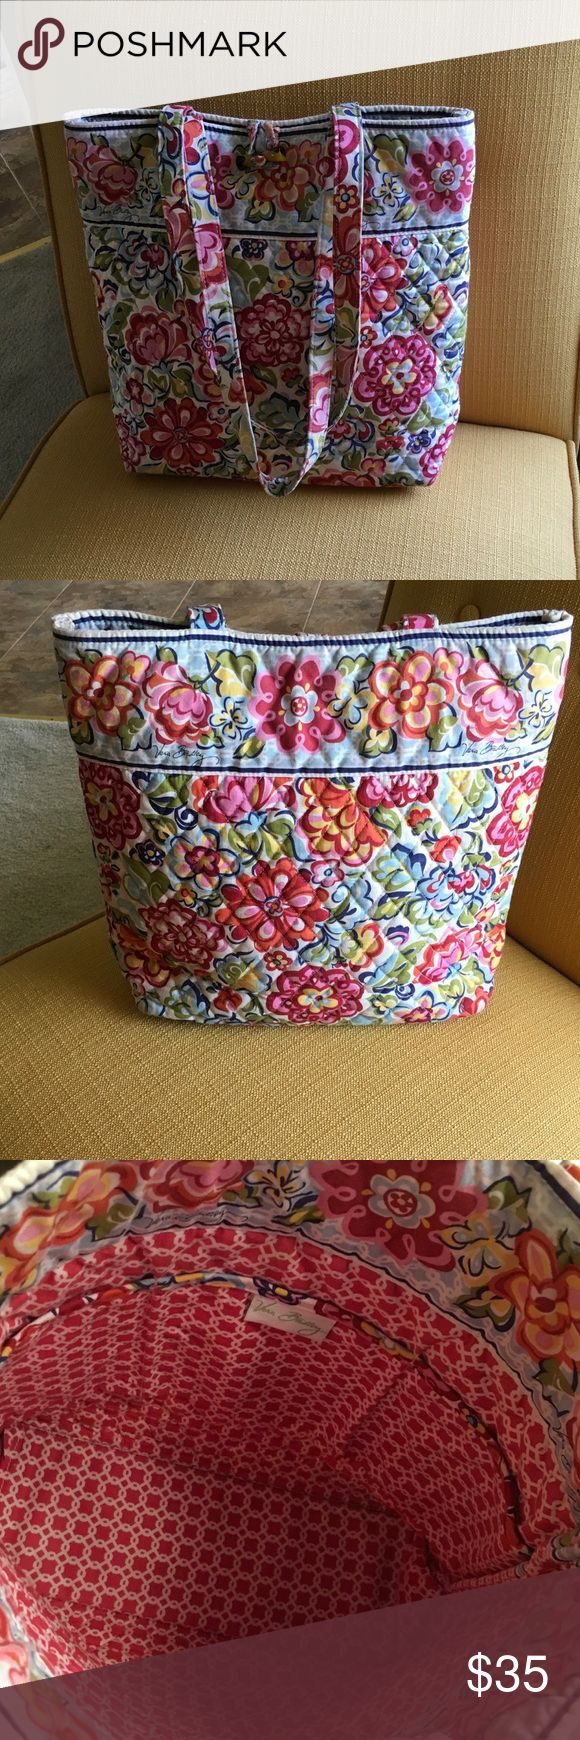 """Pretty Vera Bradley tote bag Lovely colors in this VB tote bag.  Toggle closer.  Three inside pouches.  Red, orange, pink, green, yellow, blue, and cream make up this floral print.  14"""" wide, 13"""" tall, 4"""" depth.  0519SAL Vera Bradley Bags Totes"""